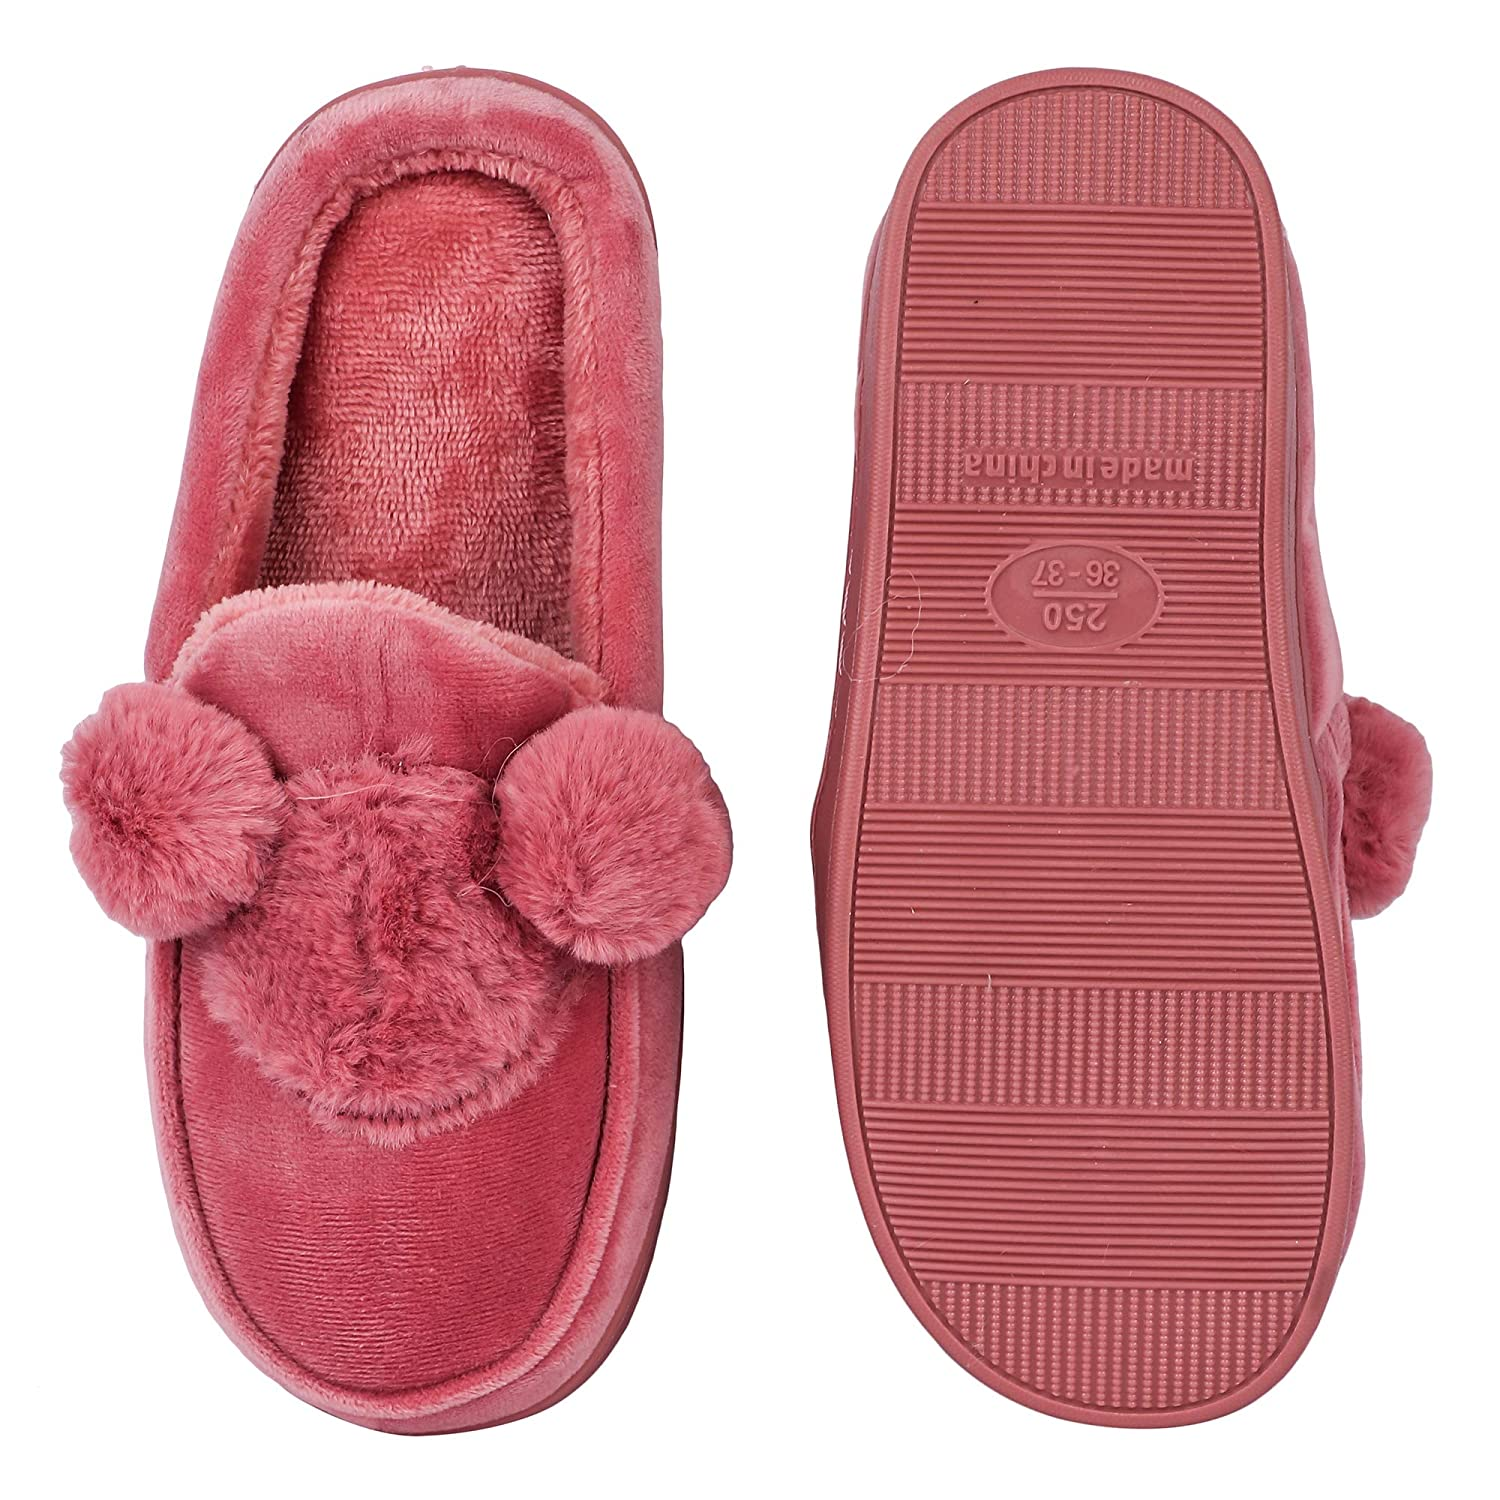 4d5bf8f43 Brauch Women s Mickey Fur Winter Slippers  Buy Online at Low Prices in  India - Amazon.in